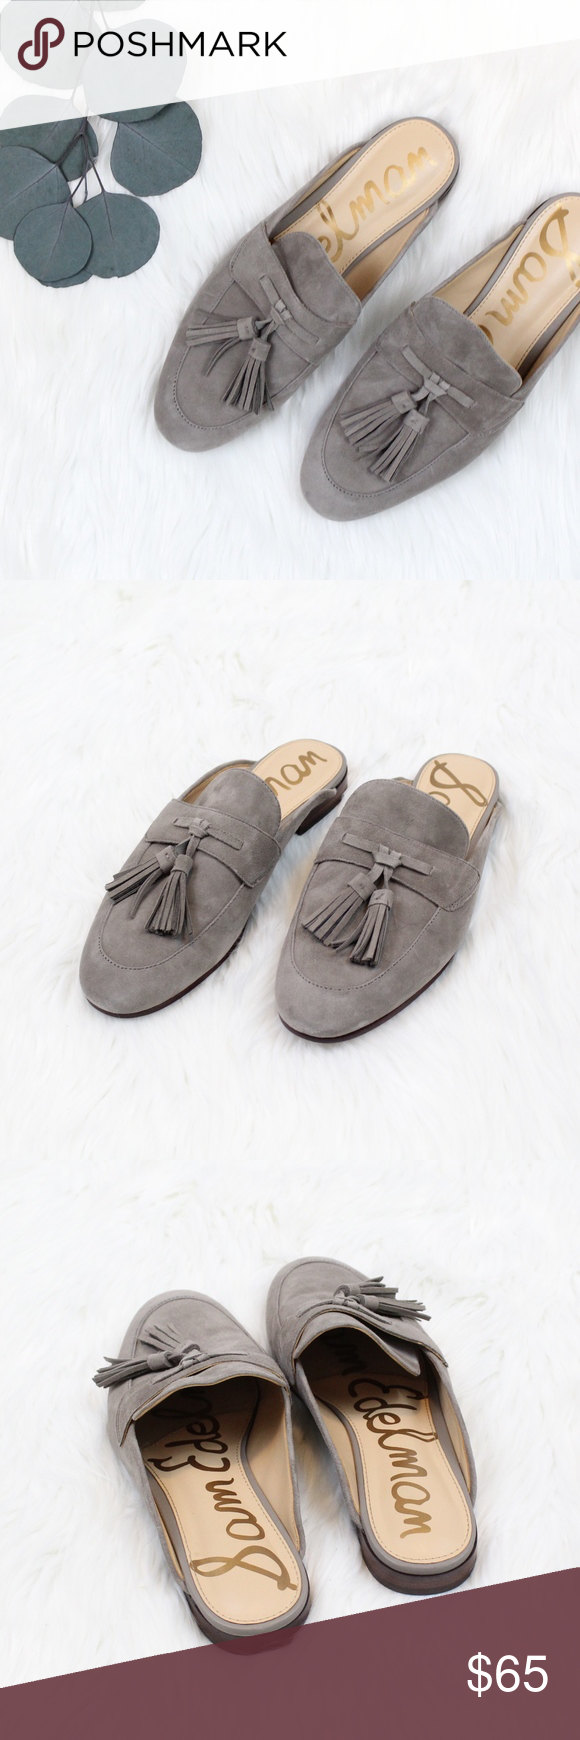 a4857f503 SAM EDELMAN Paris Backless Tassel Loafer in Putty Like new condition! Twin  tassels and traditional